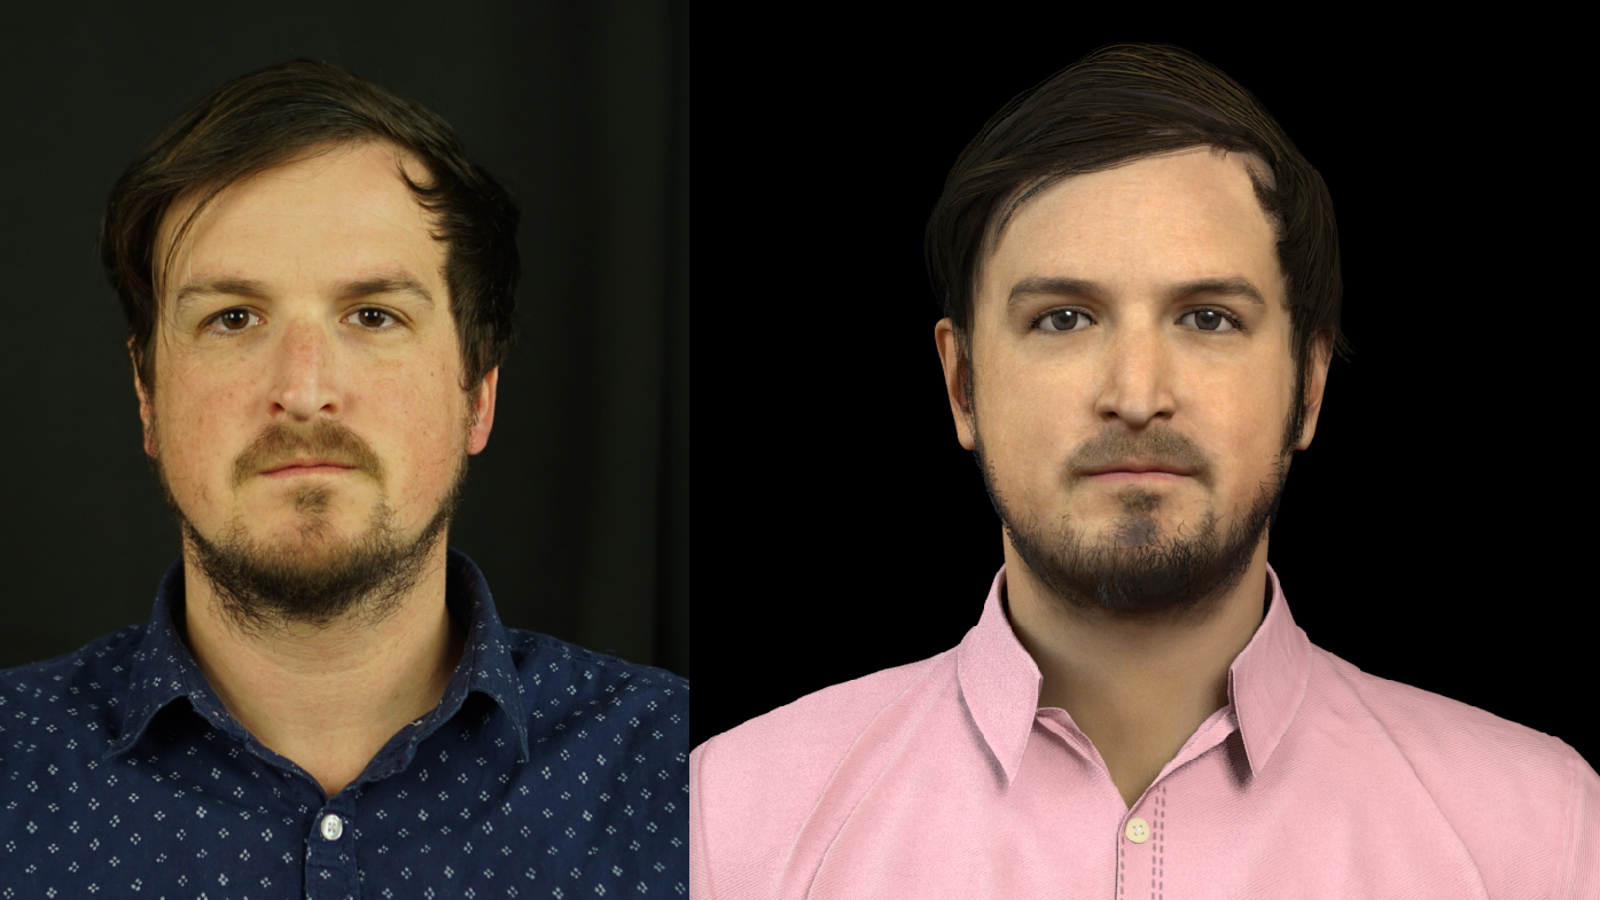 This Company Is Betting the Future Is Personal AI Avatars, So It Made Me One